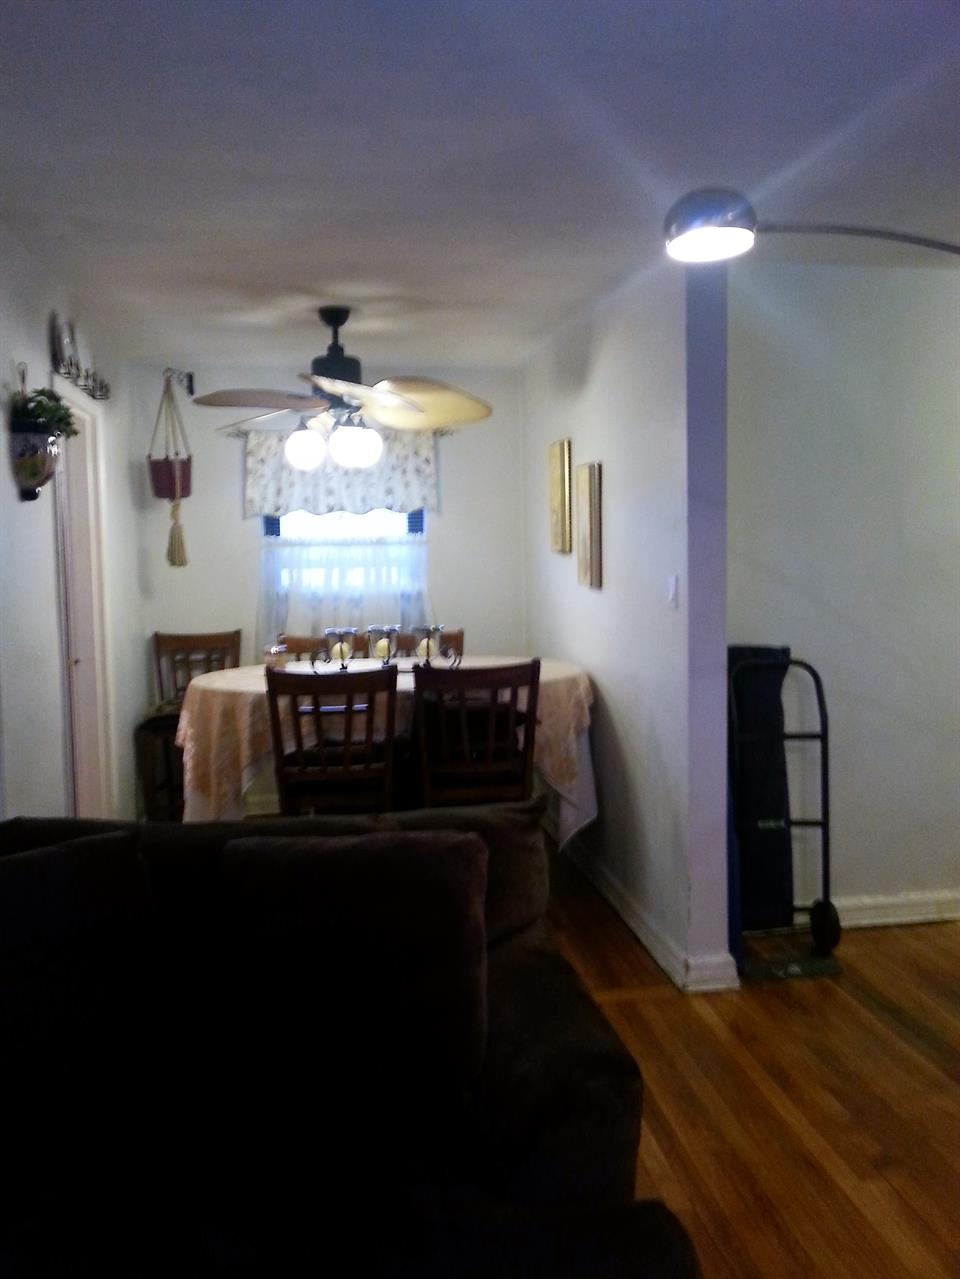 Additional photo for property listing at 268 Bay17th Street Apt A1 268 Bay 17th Street Apt A1 Brooklyn, New York 11214 United States